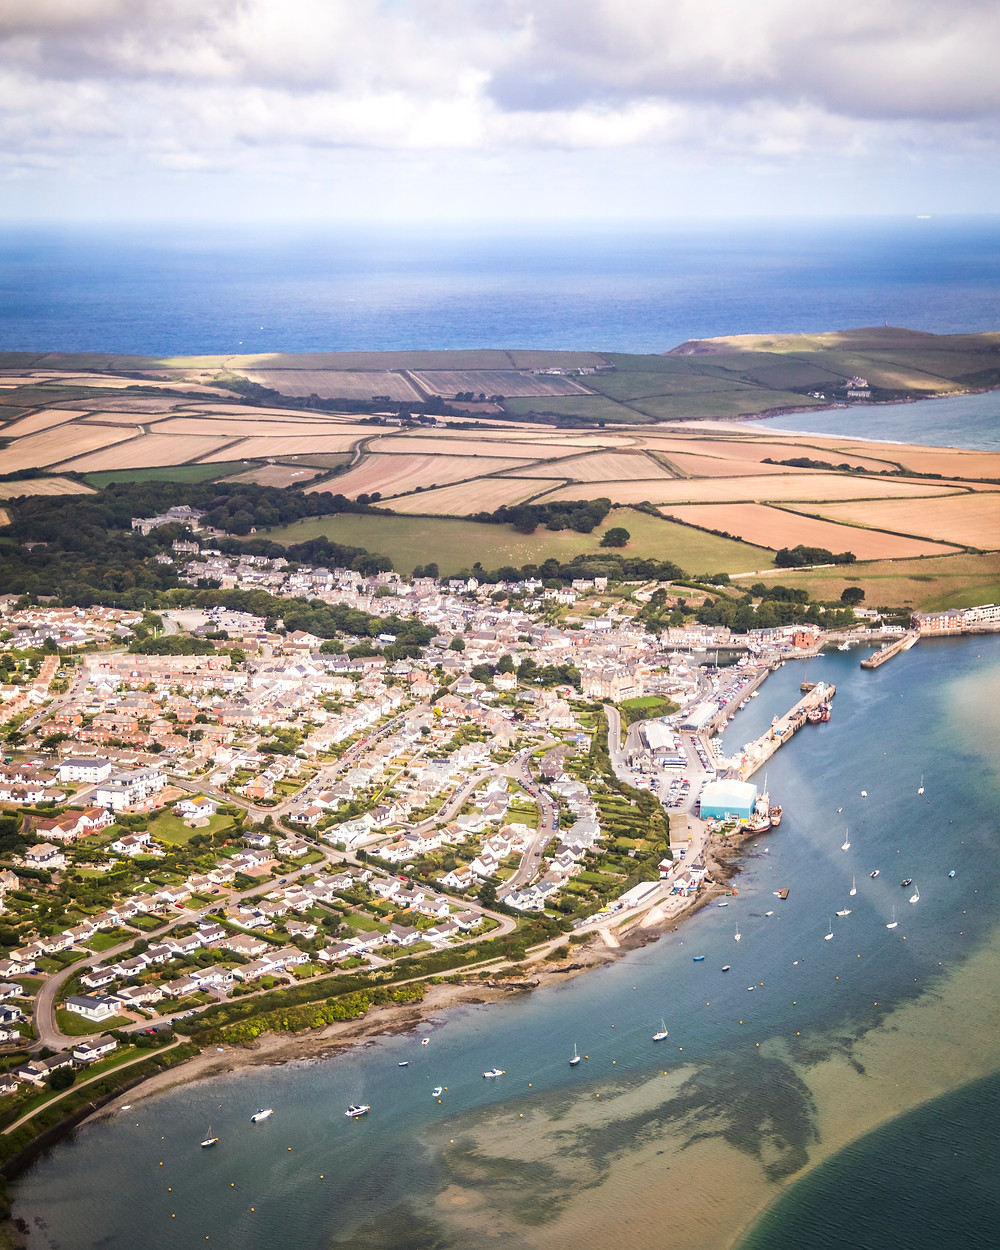 Aerial View Of Padstow and The Camel Estuary, Cornwall From The Air